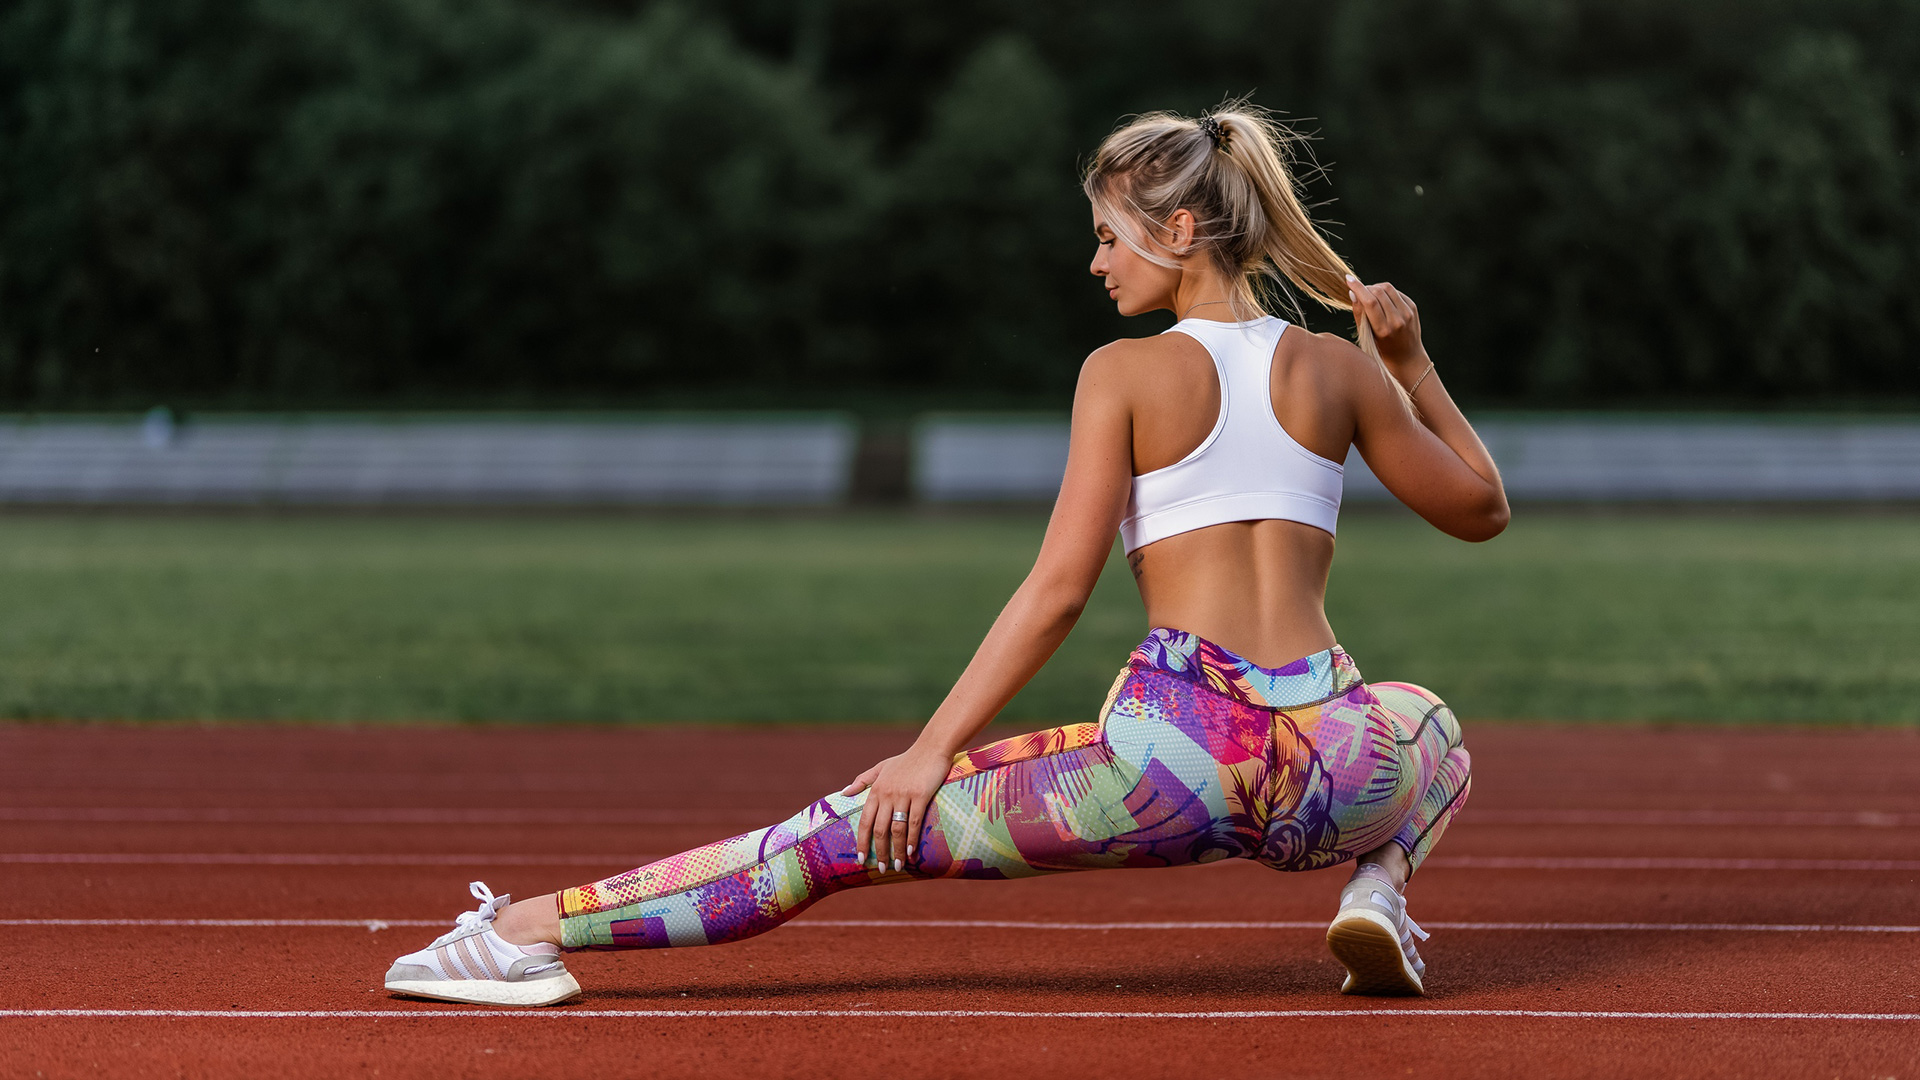 Stretching out before a run